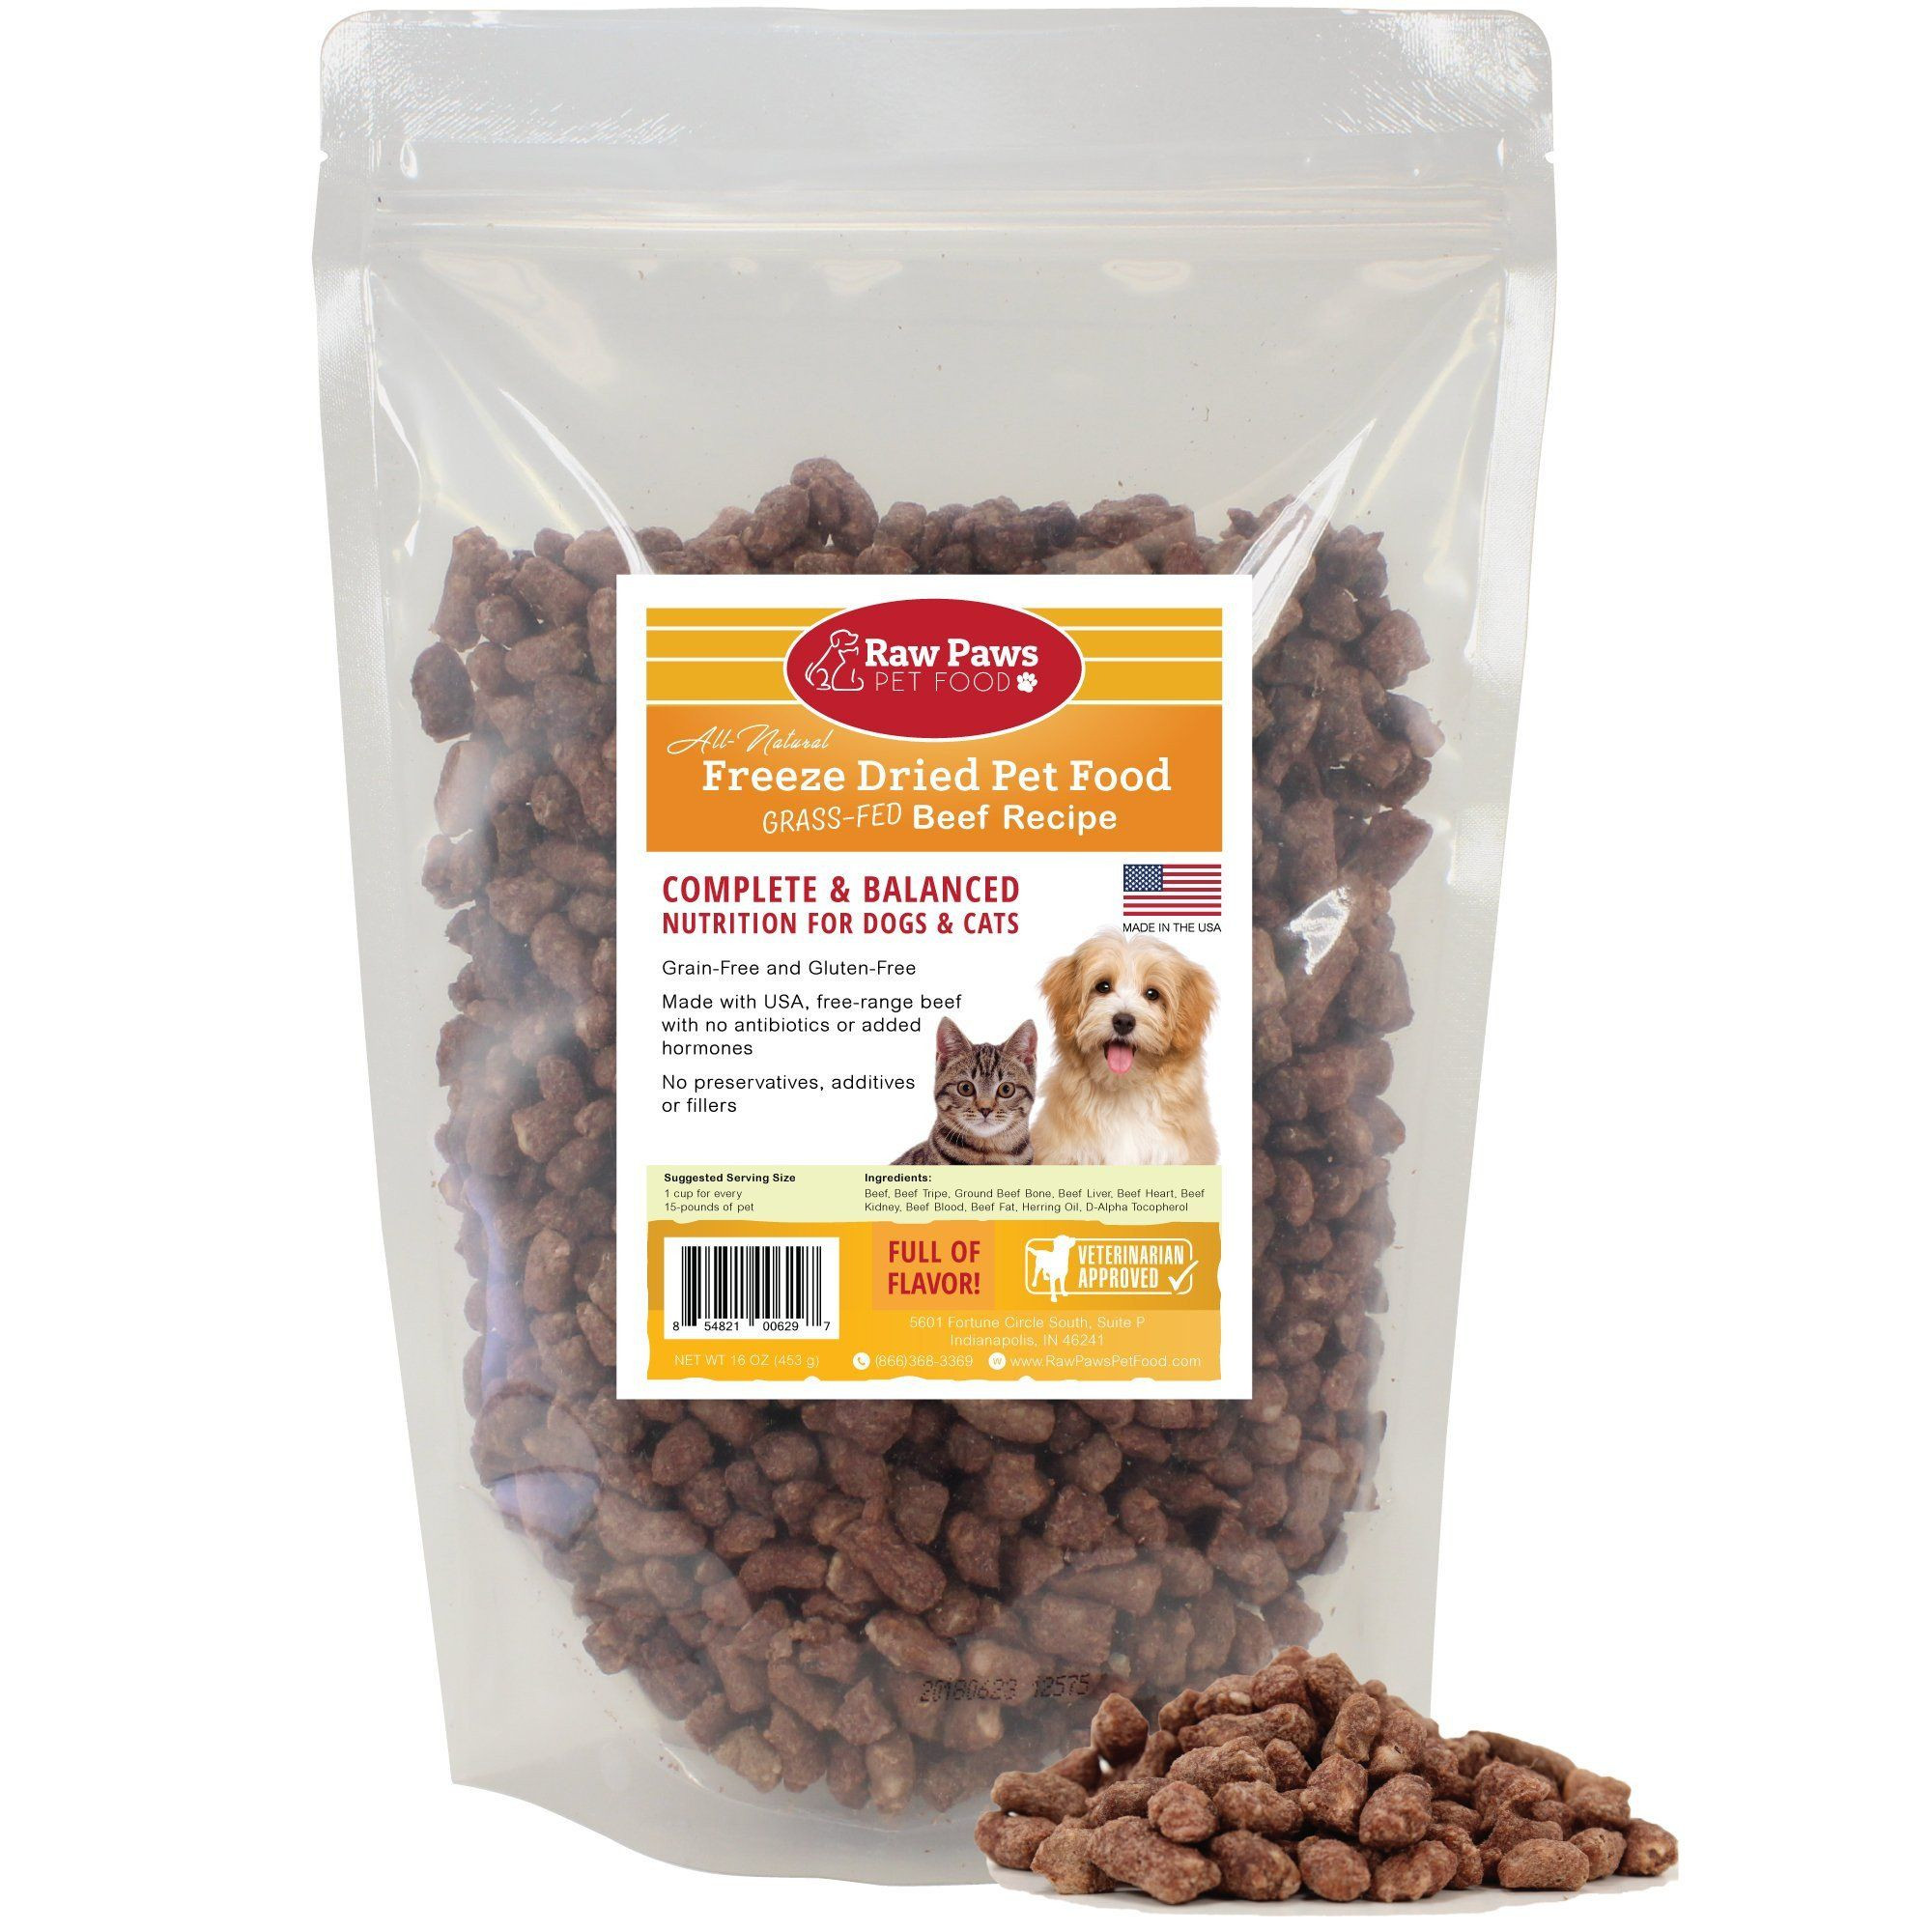 Raw Paws Pet Premium Raw Freeze Dried Pet Food for Dogs